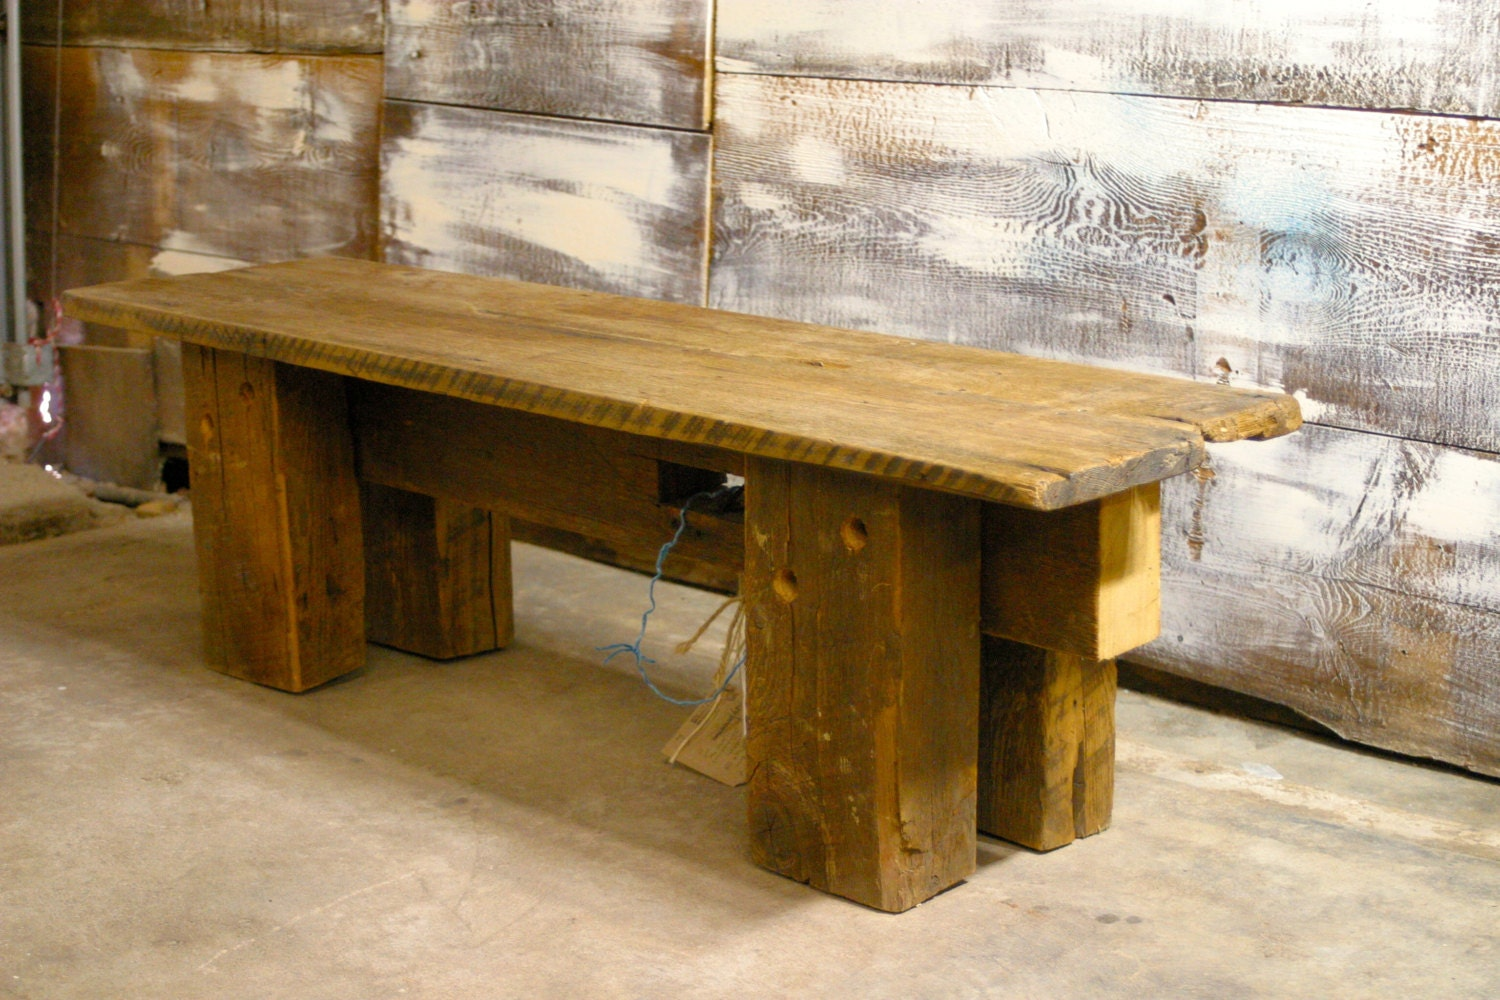 antique barn beam bench made with old fashioned tools With benches made from old barn wood